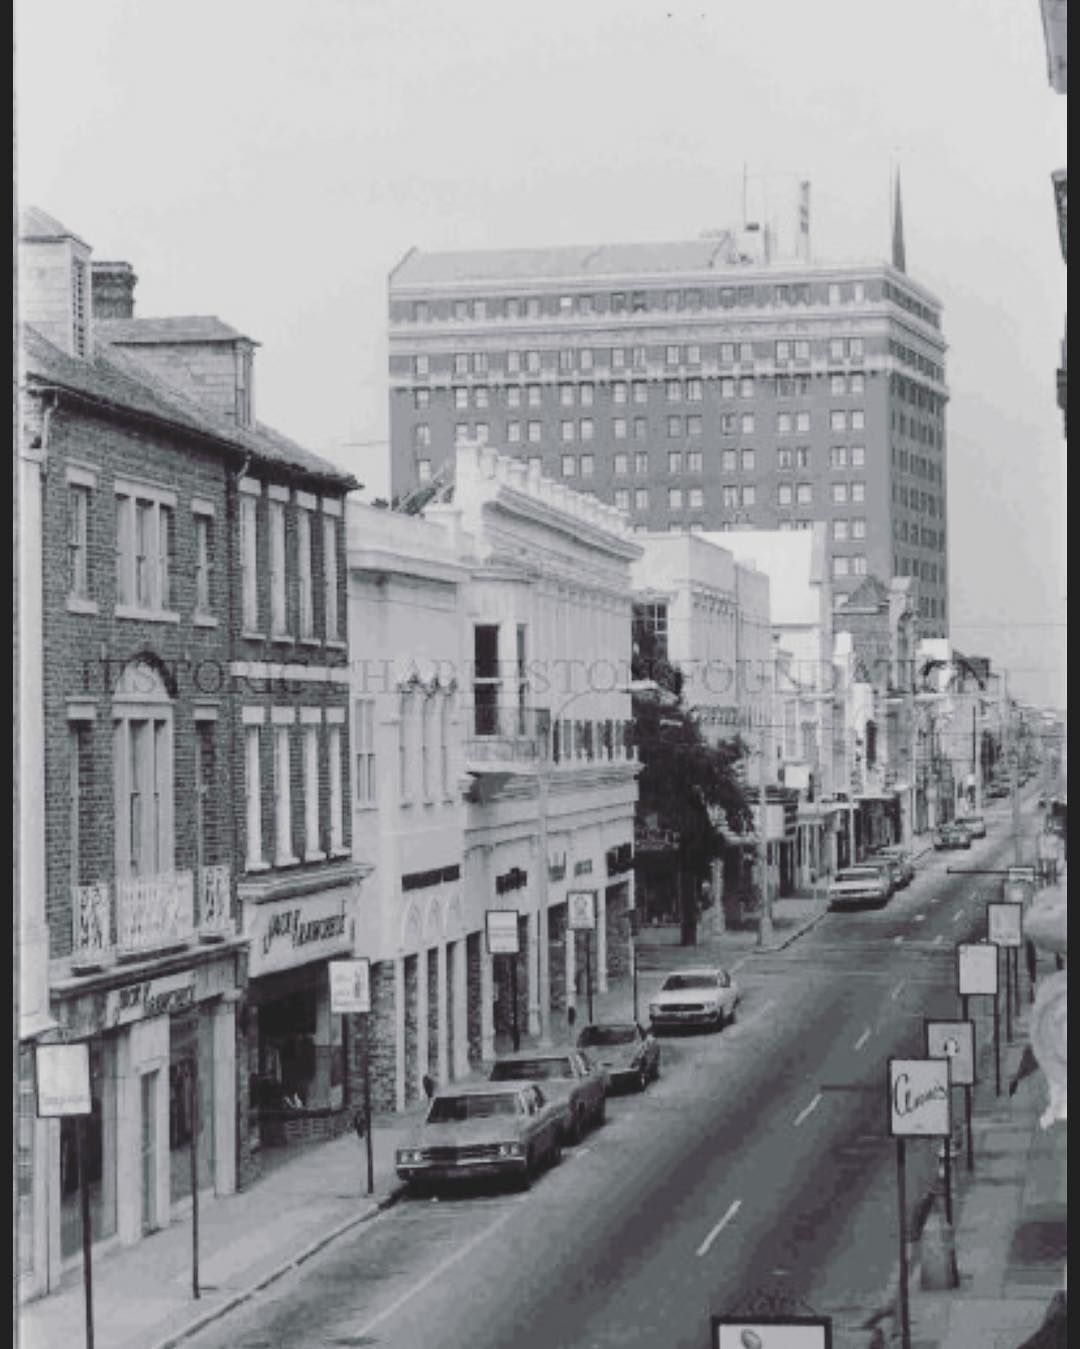 Throwback To King Street In The 70's #tbt #throwback